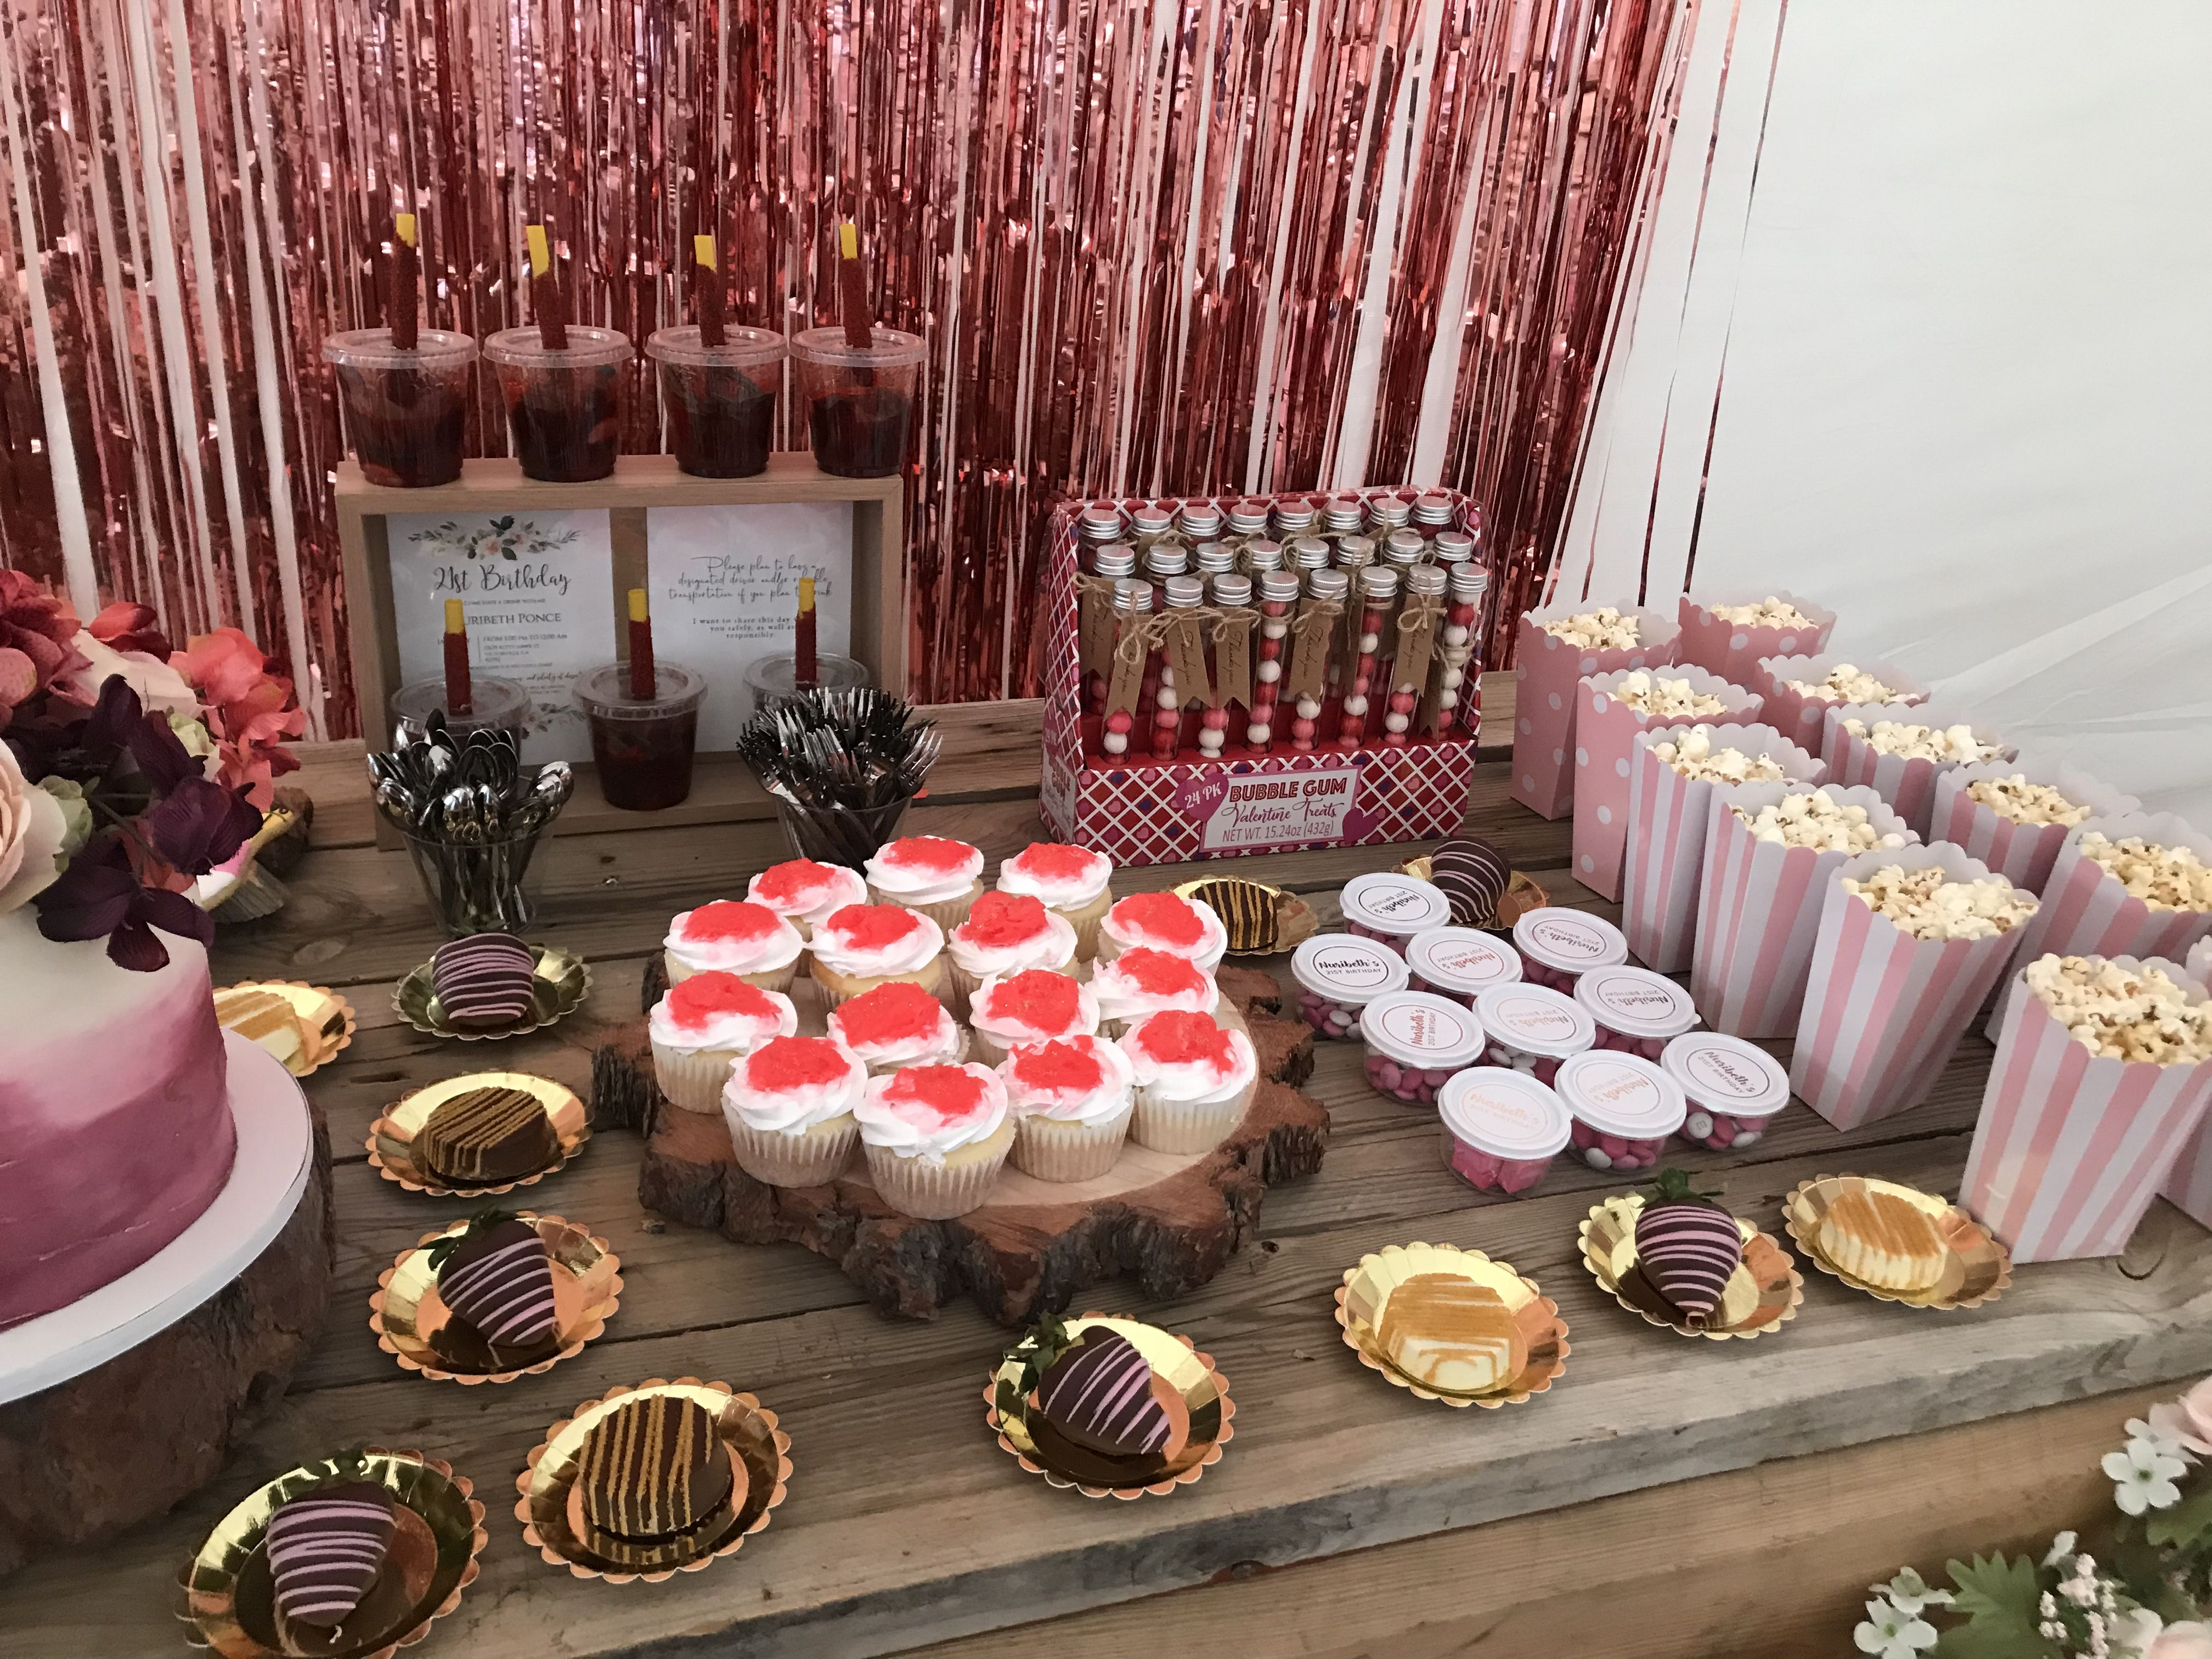 Candy Table In 2020 Birthday Party Candy Table Candy Table Candy Birthday Party,Colored Stainless Steel Tumblers